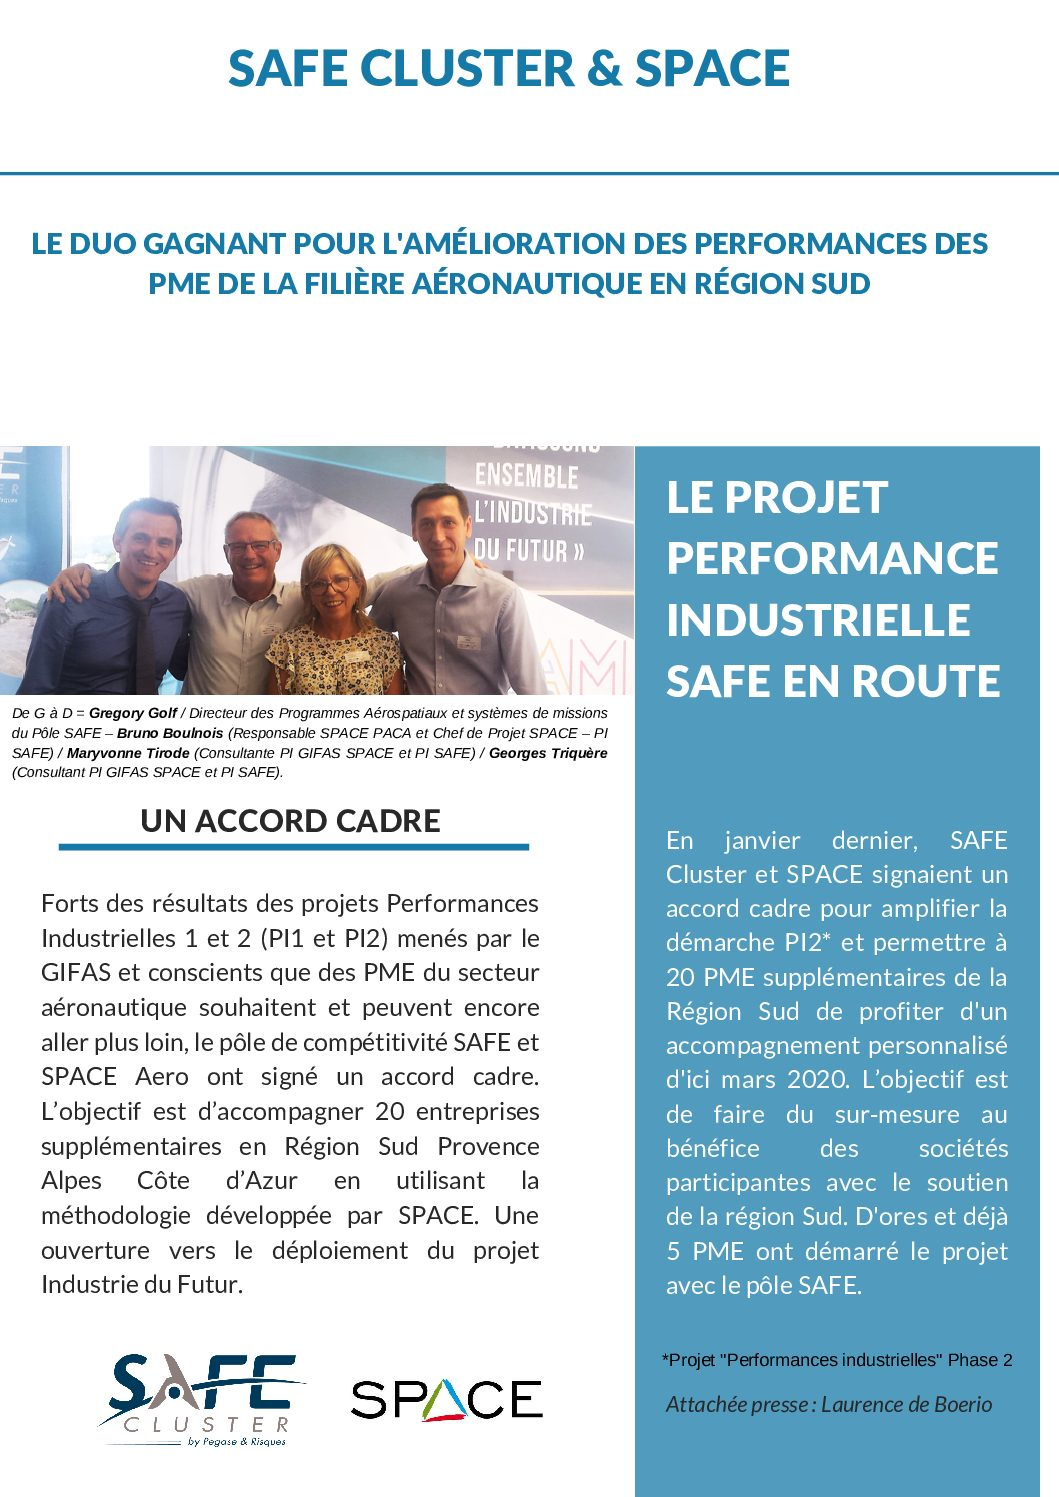 SAFE CLUSTER & SPACE – Le Duo Gagnant